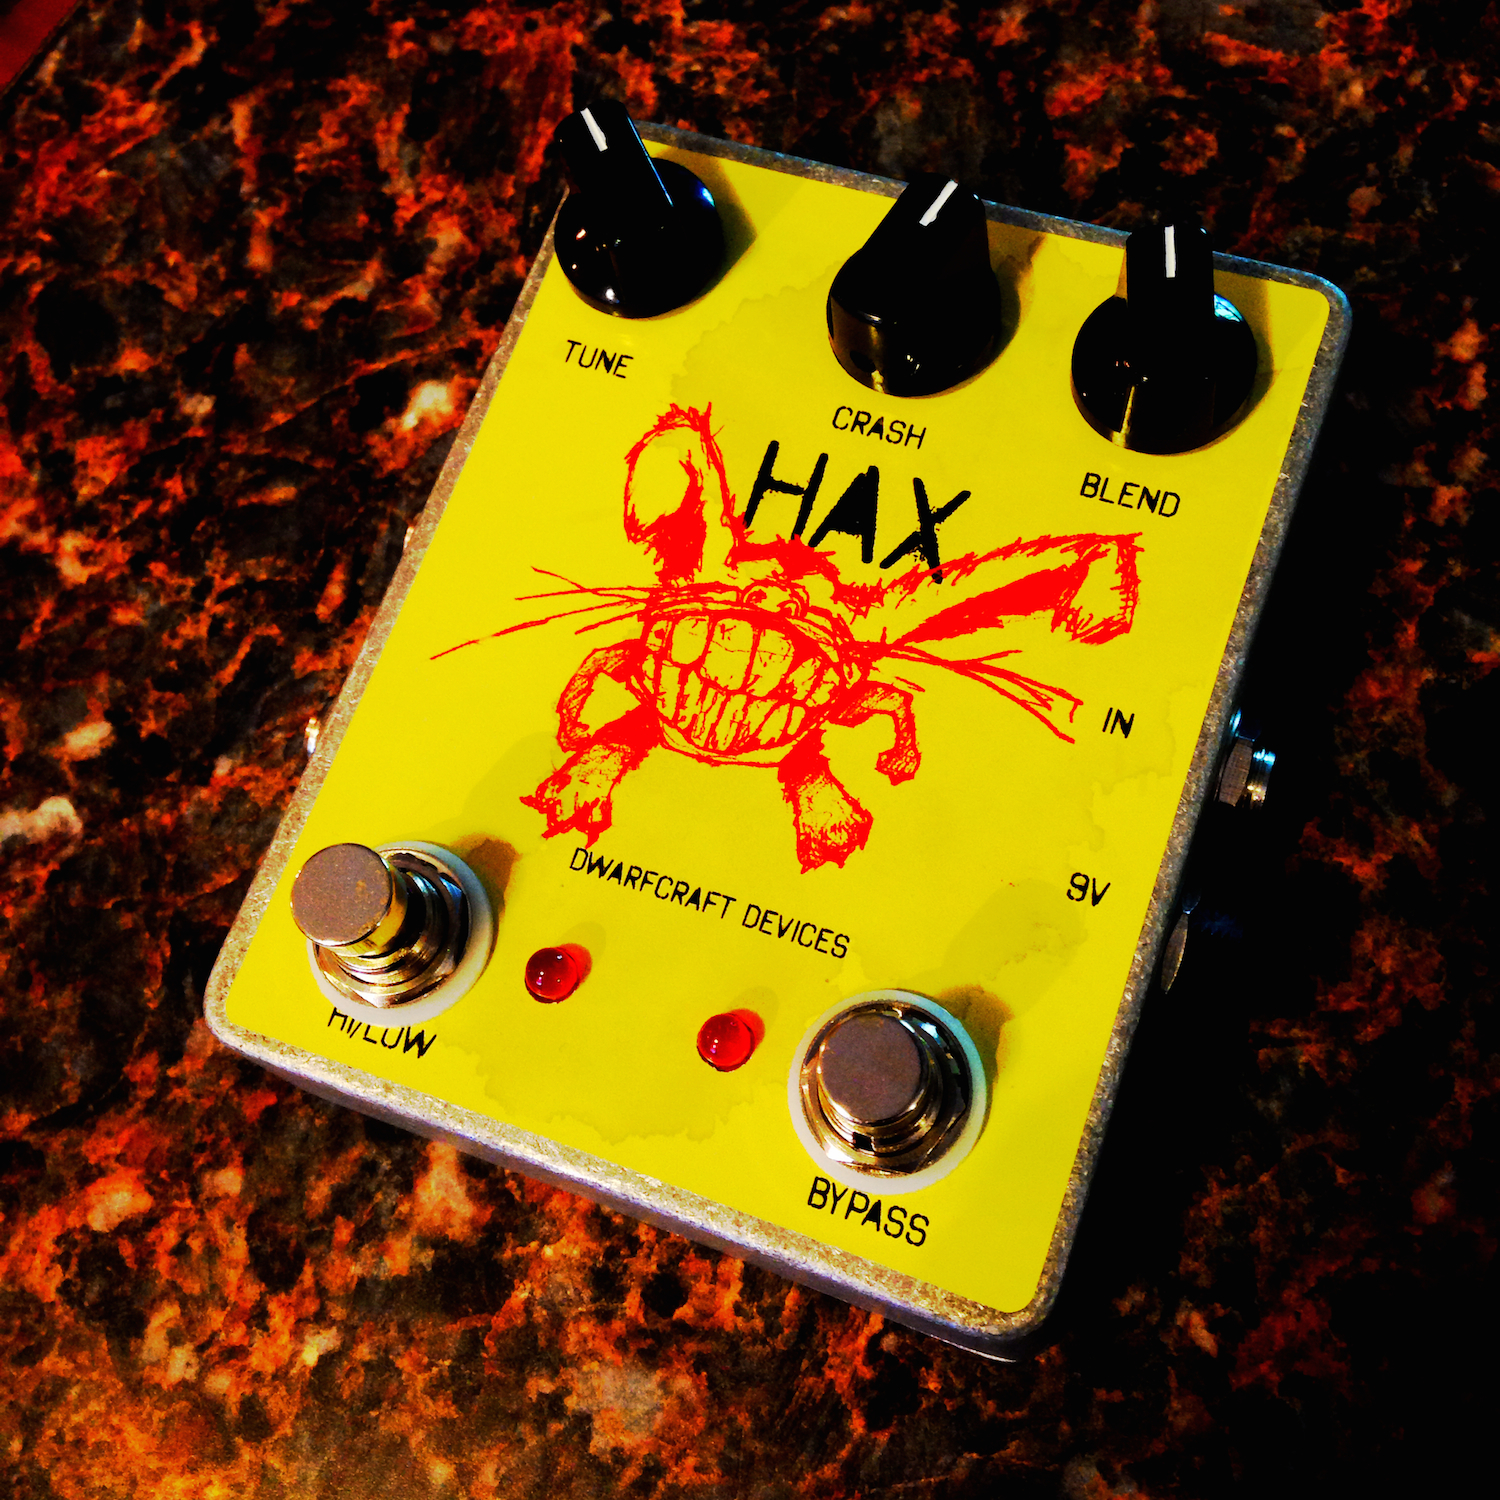 Dwarfcraft Devices Hax Ring Modulator